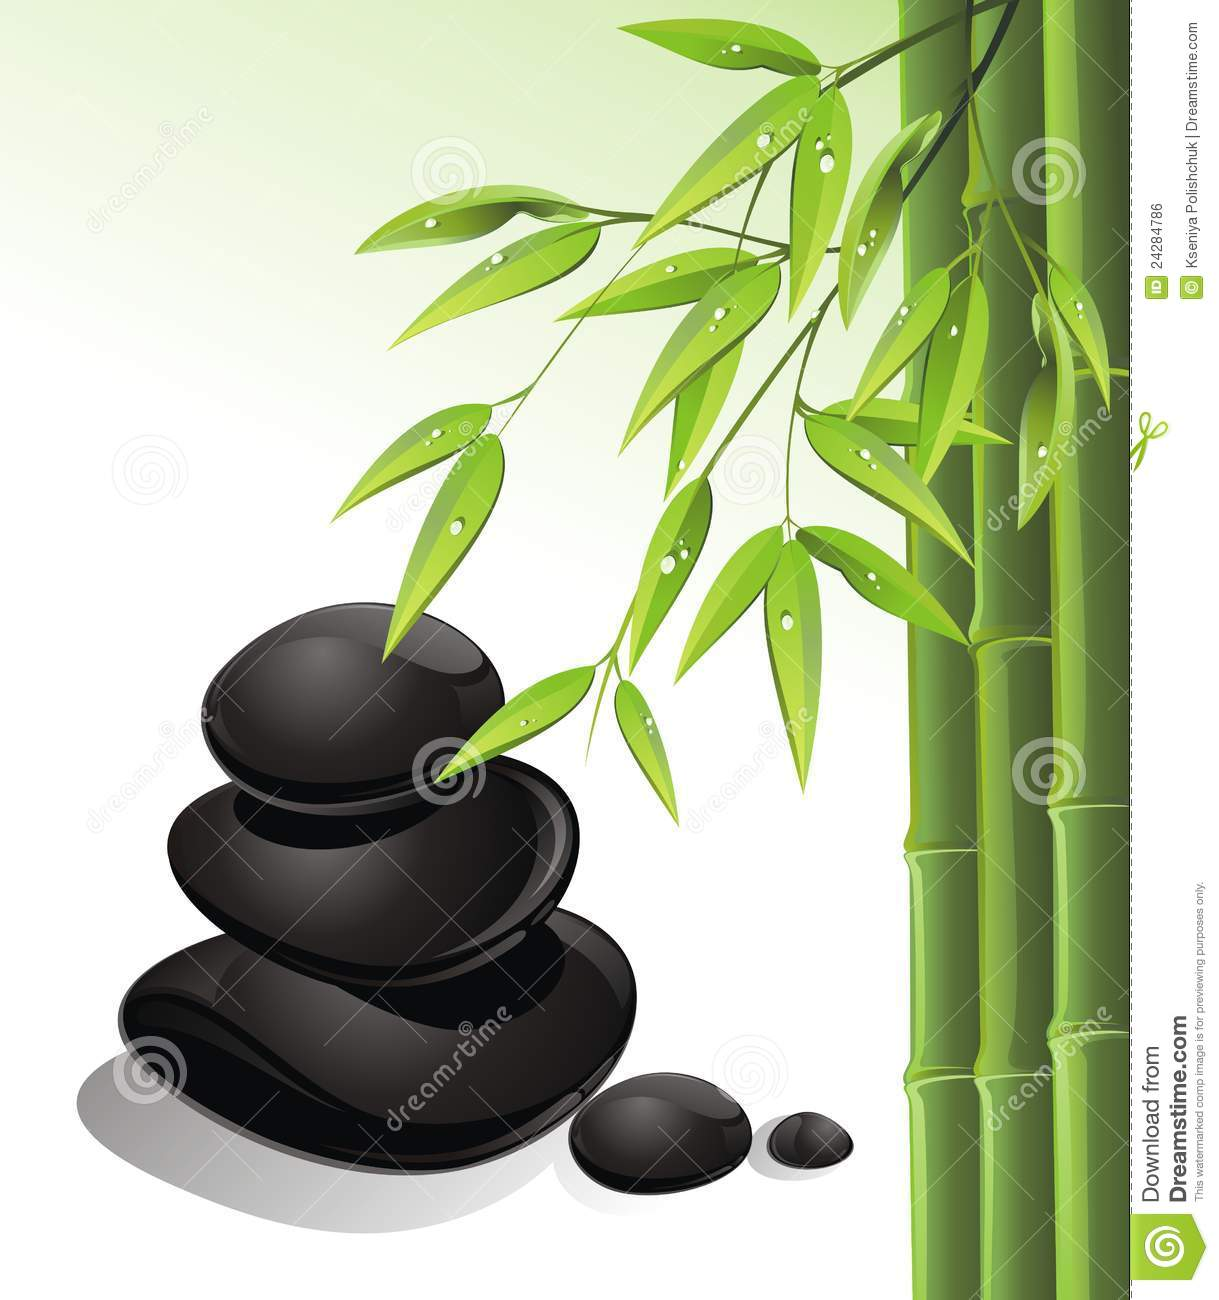 zen stones and bamboo - photo #7